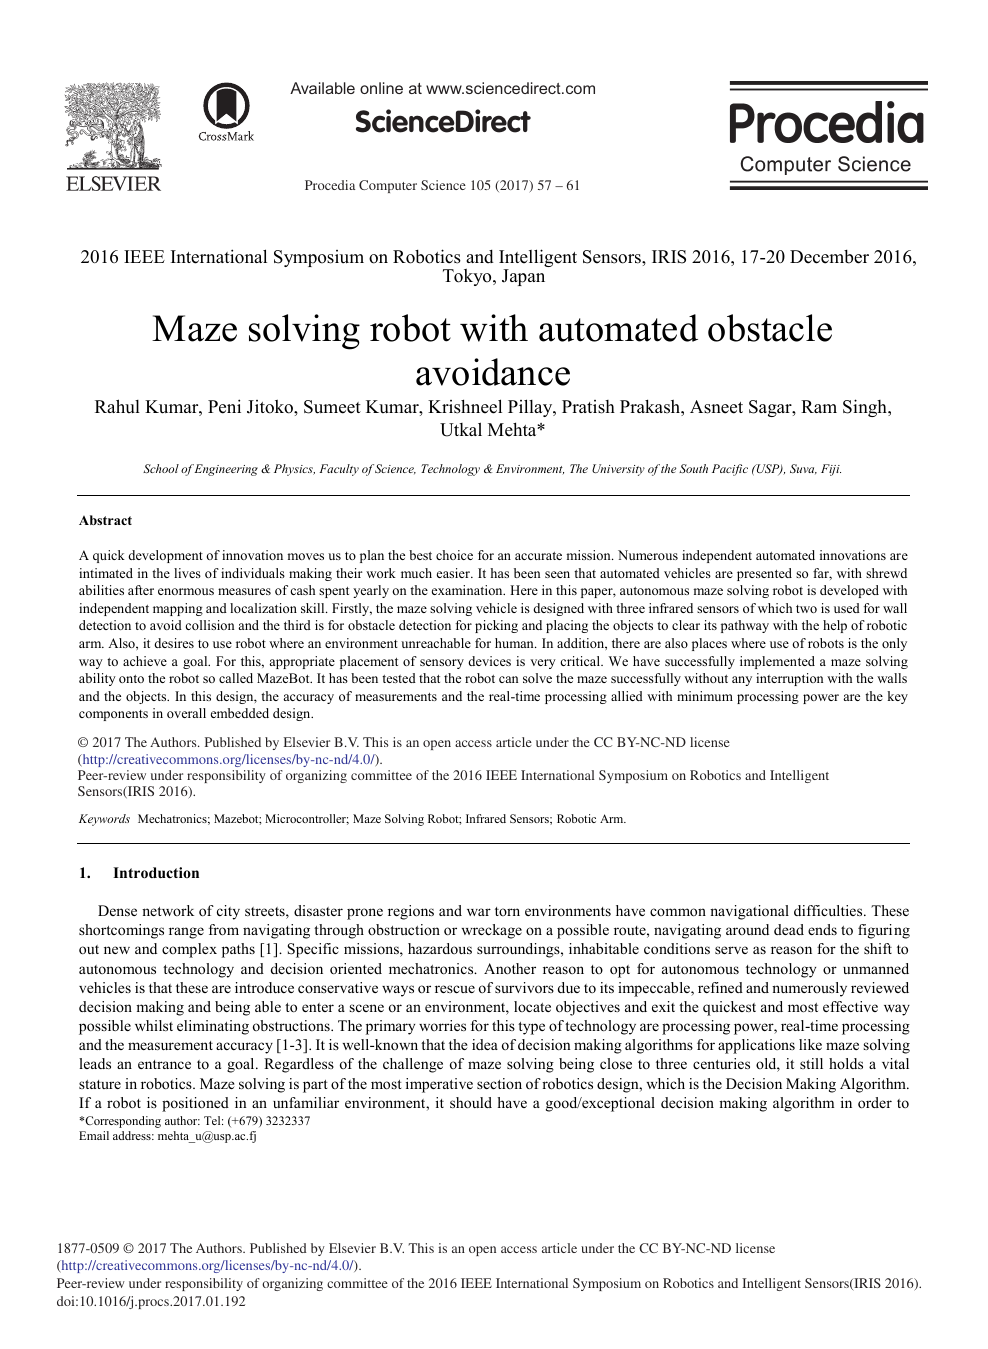 Maze Solving Robot with Automated Obstacle Avoidance – topic